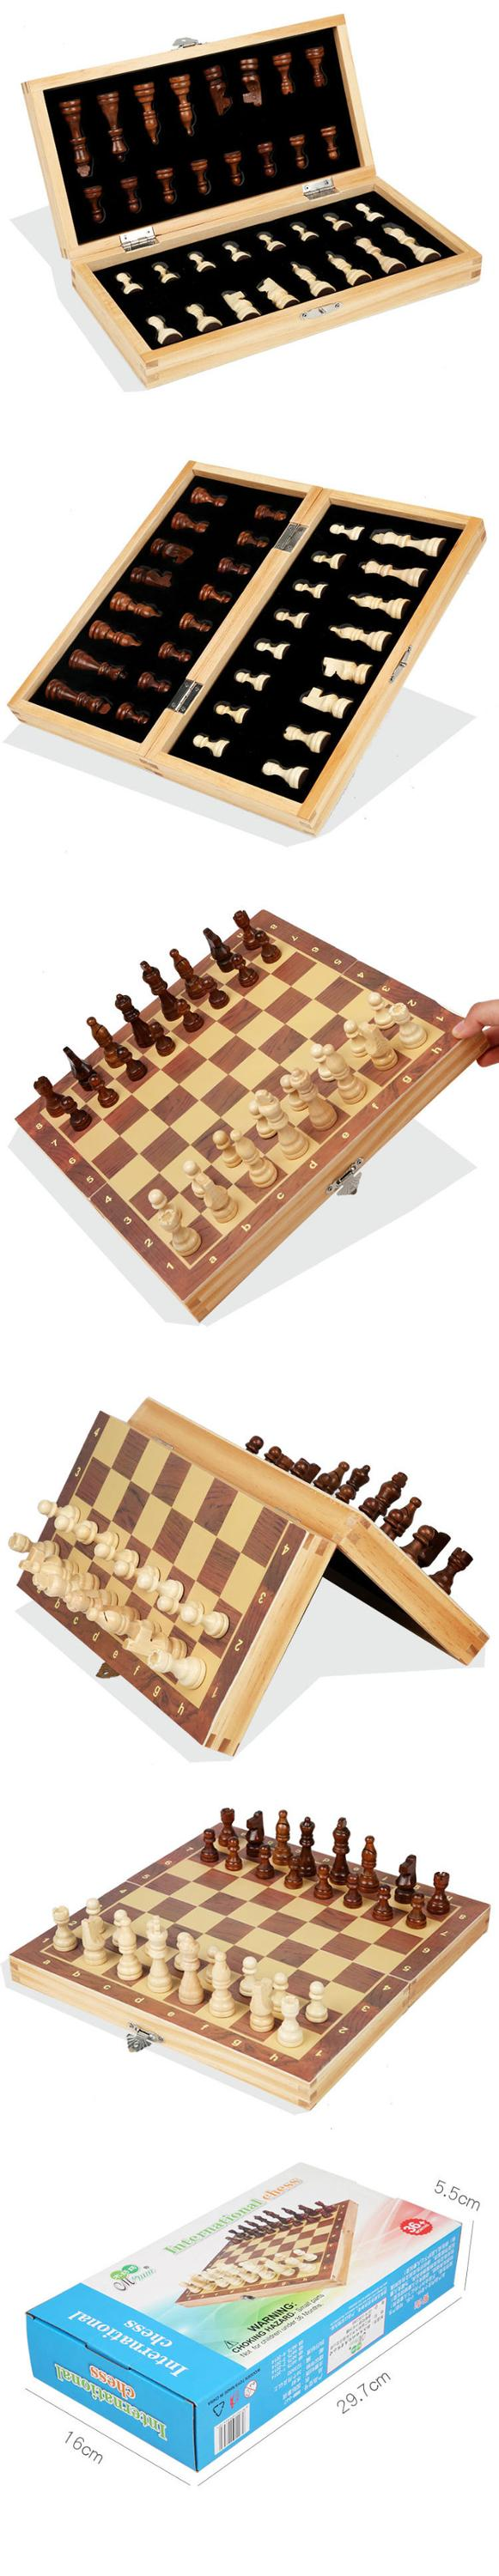 Retro Table toys Wooden magnetic chess Foldable Portable International chess